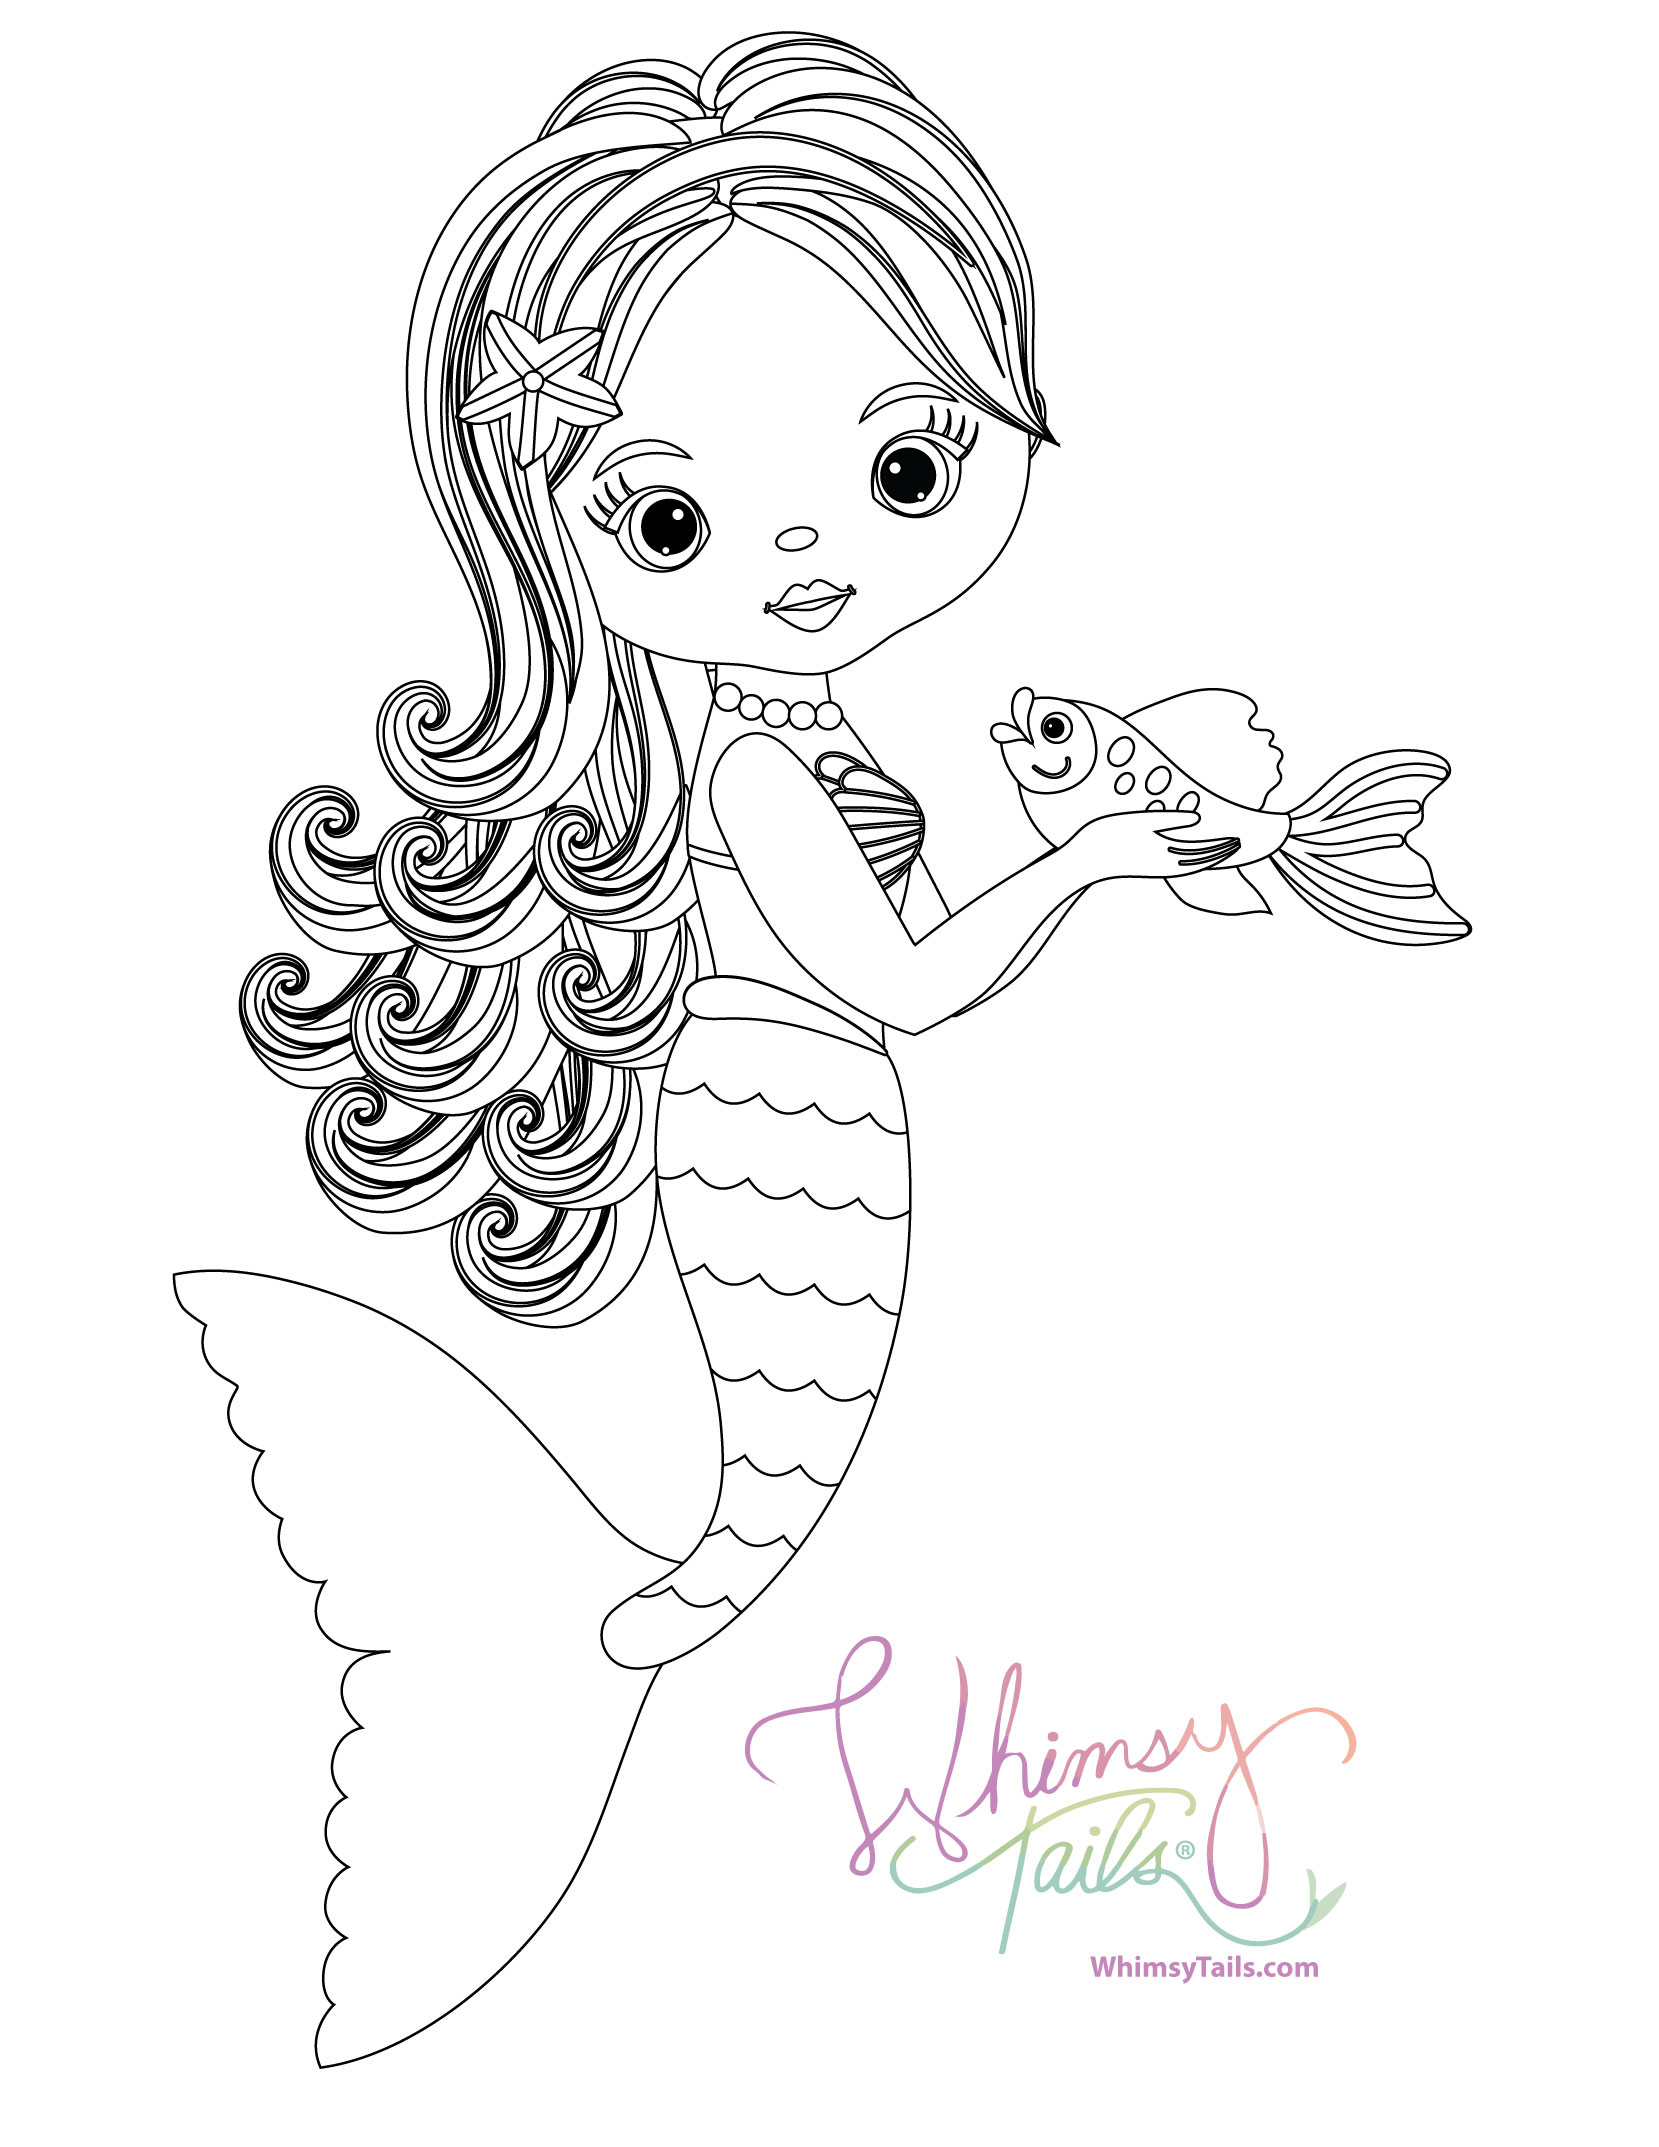 Free Coloring Pages Whimsy Tails Mermaid And Shark Blankets